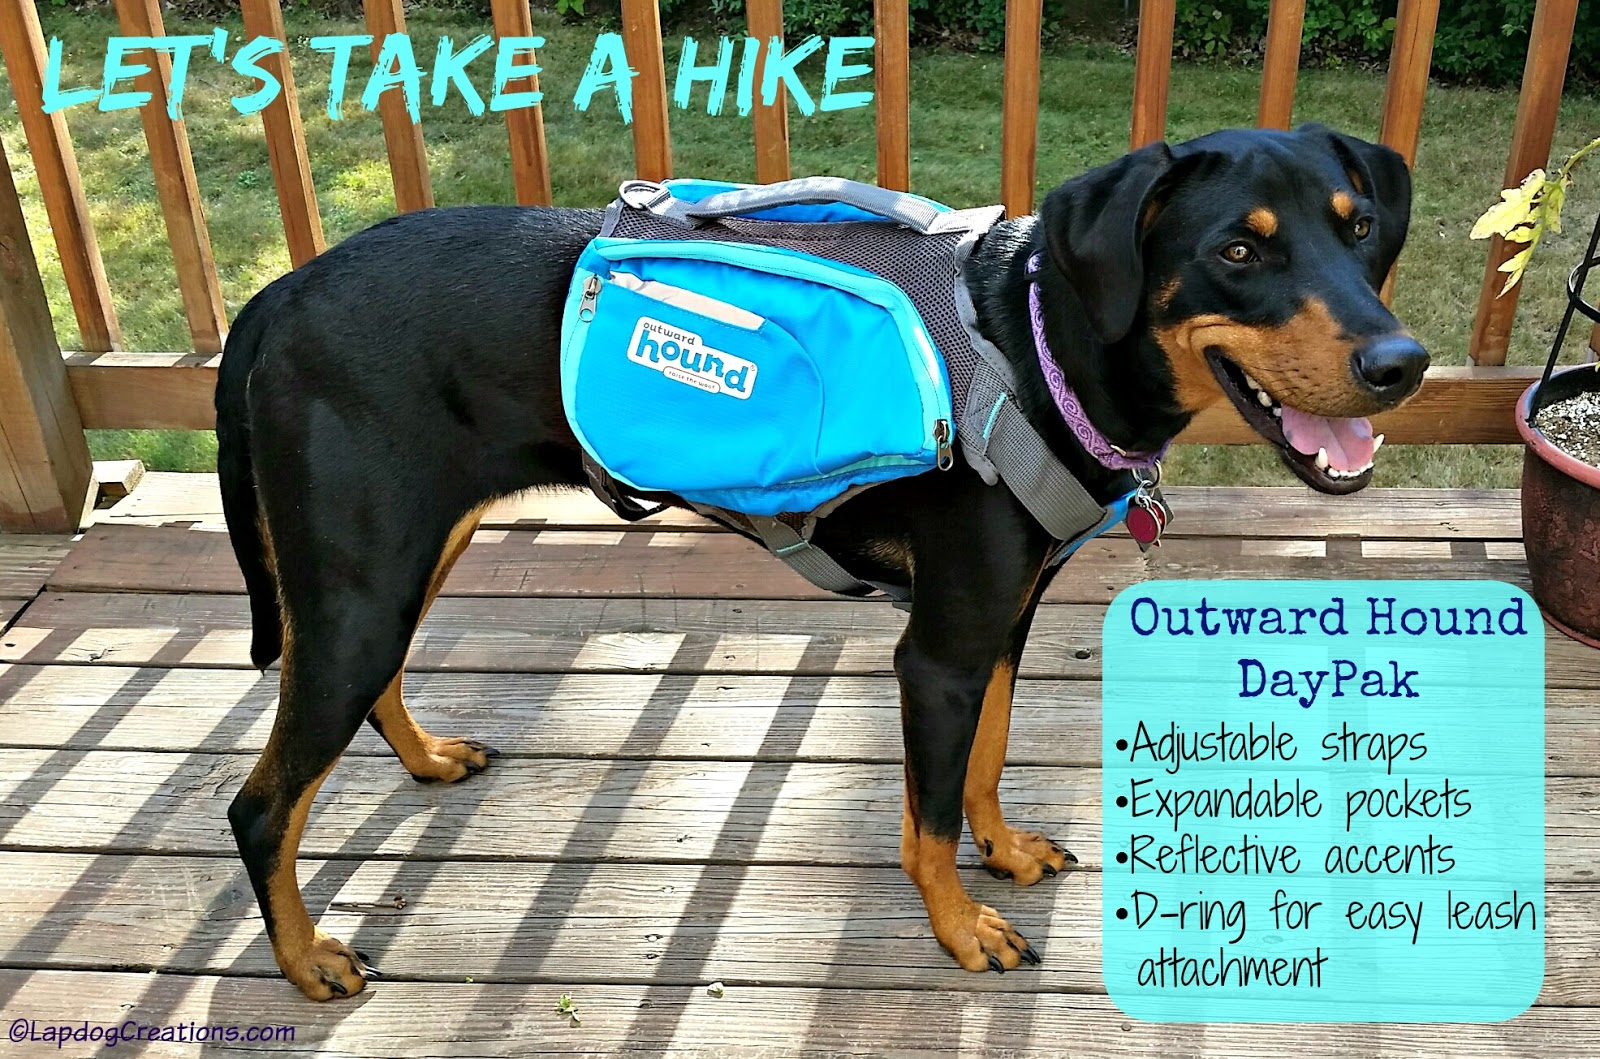 Watch How to Hike with Your Hound video